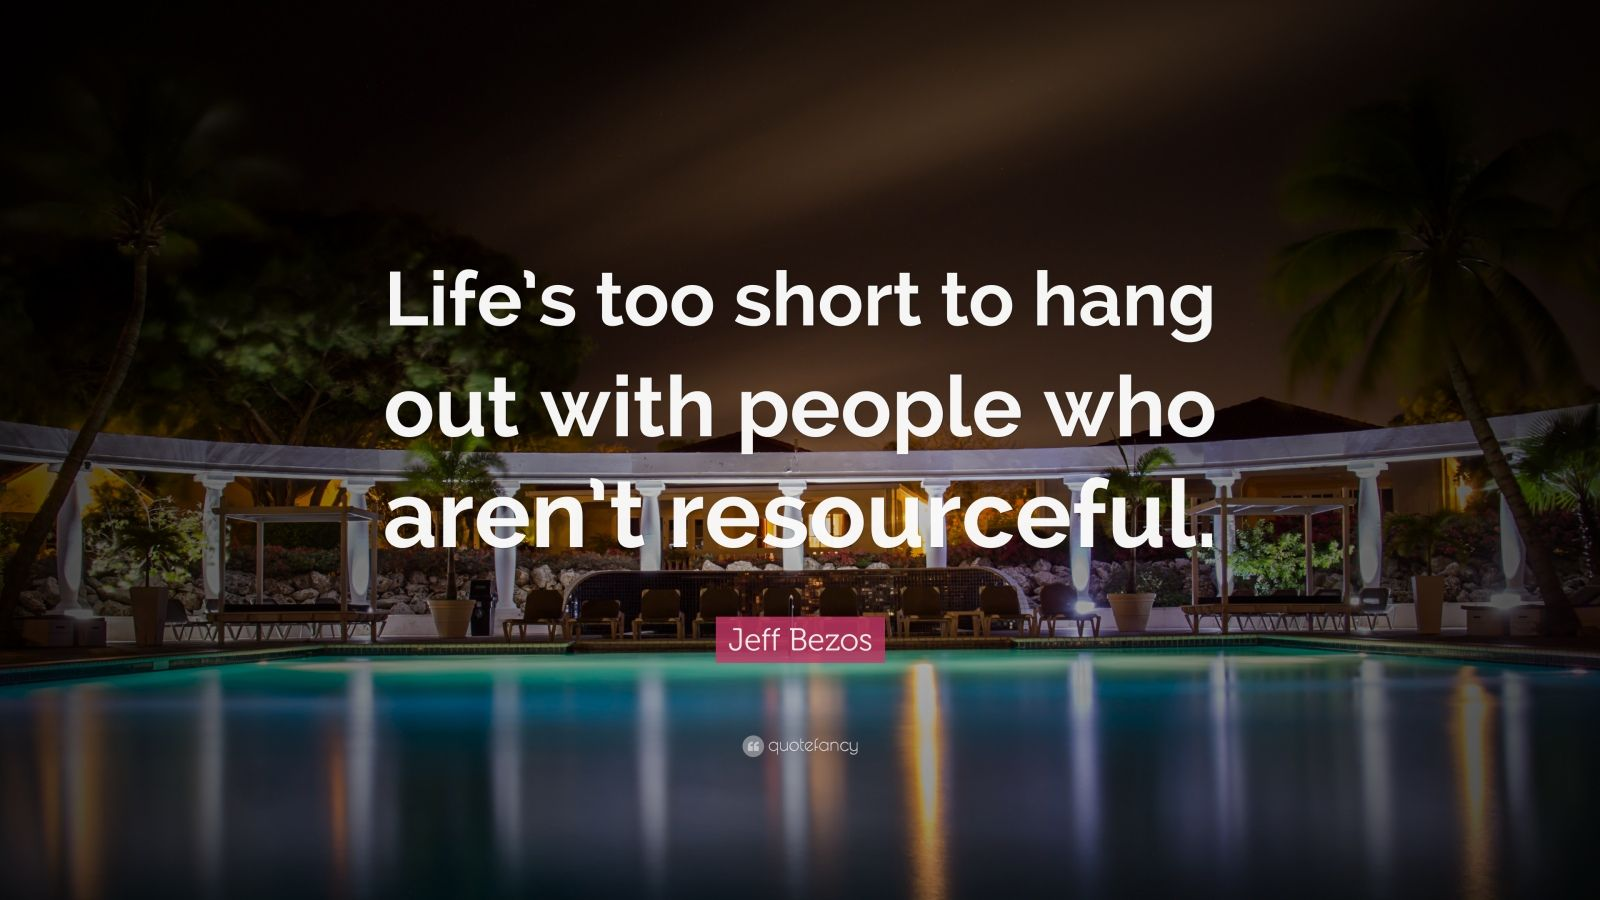 Elon Musk Quotes Wallpapers Jeff Bezos Quote Life S Too Short To Hang Out With